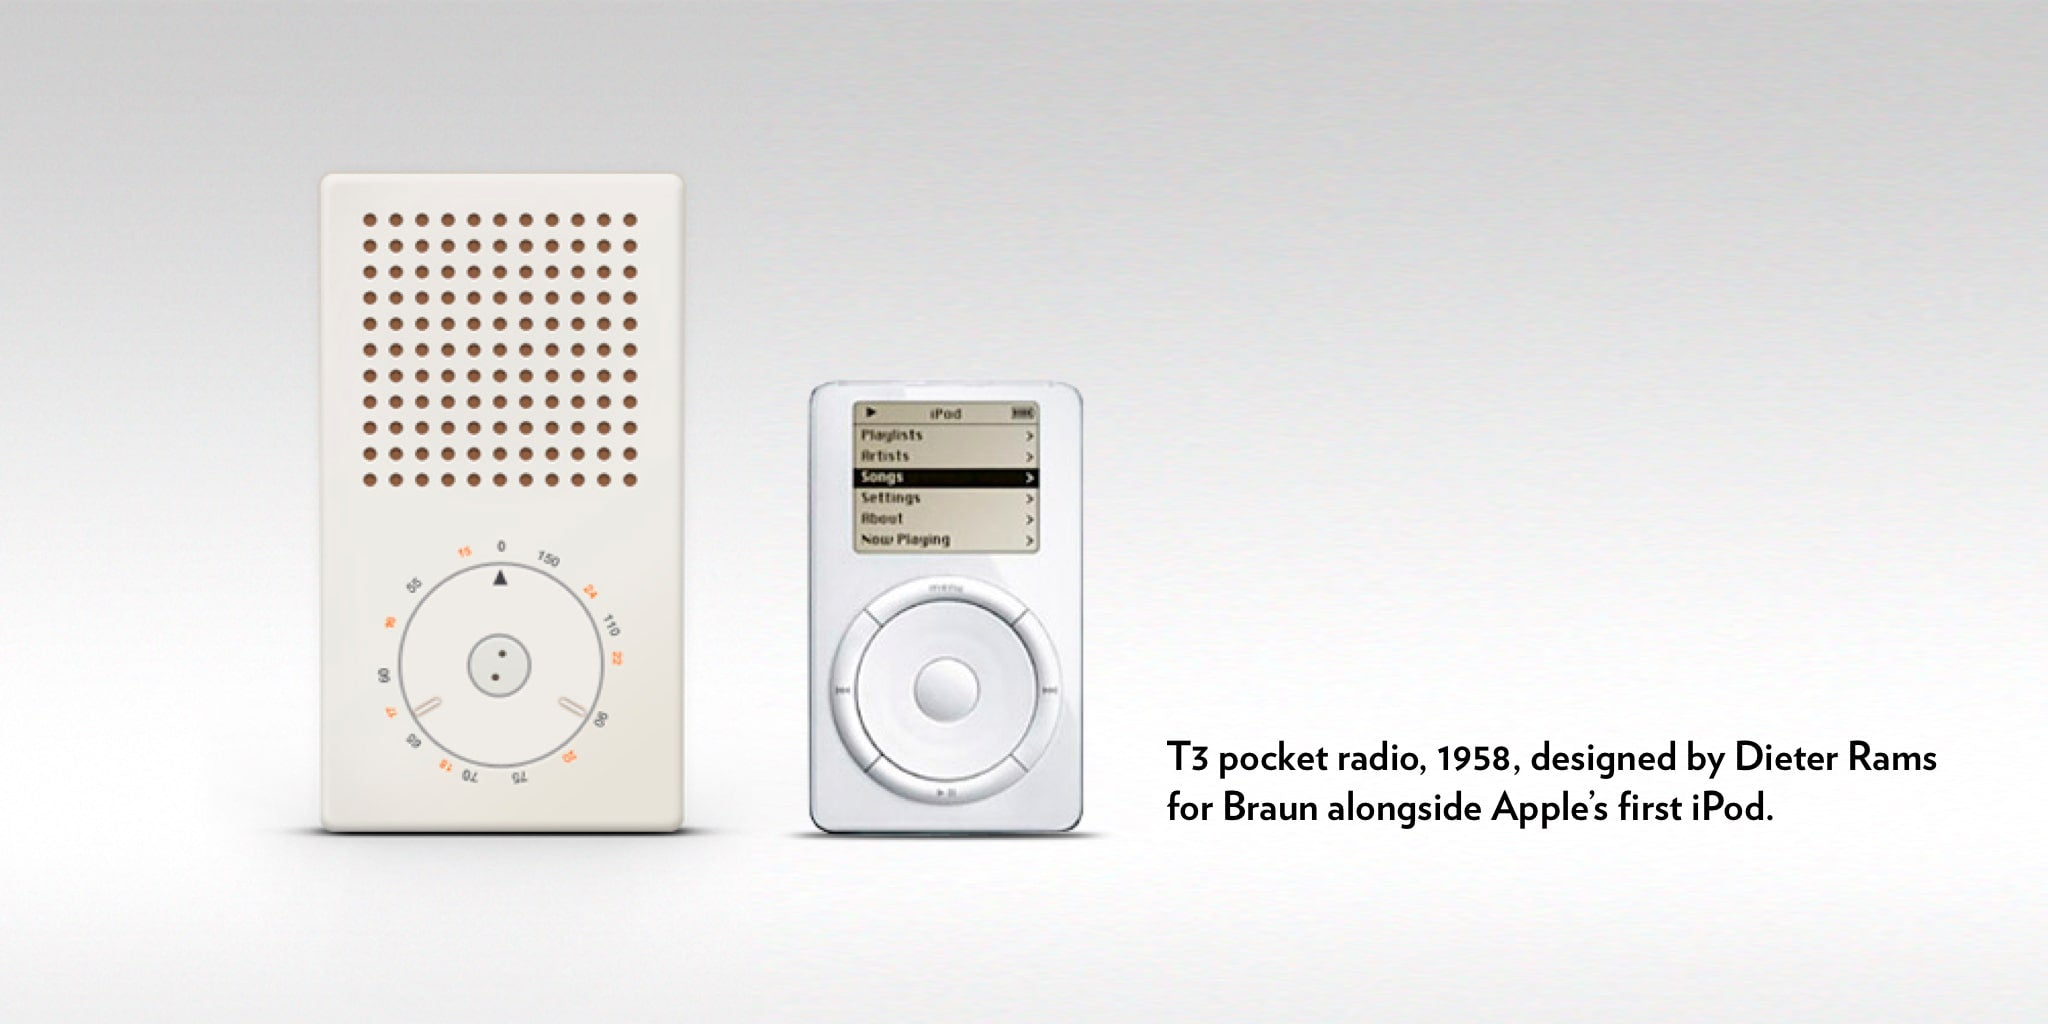 T3 pocket radio, 1958, designed by Dieter Rams for Braun alongside Apple's first iPod.